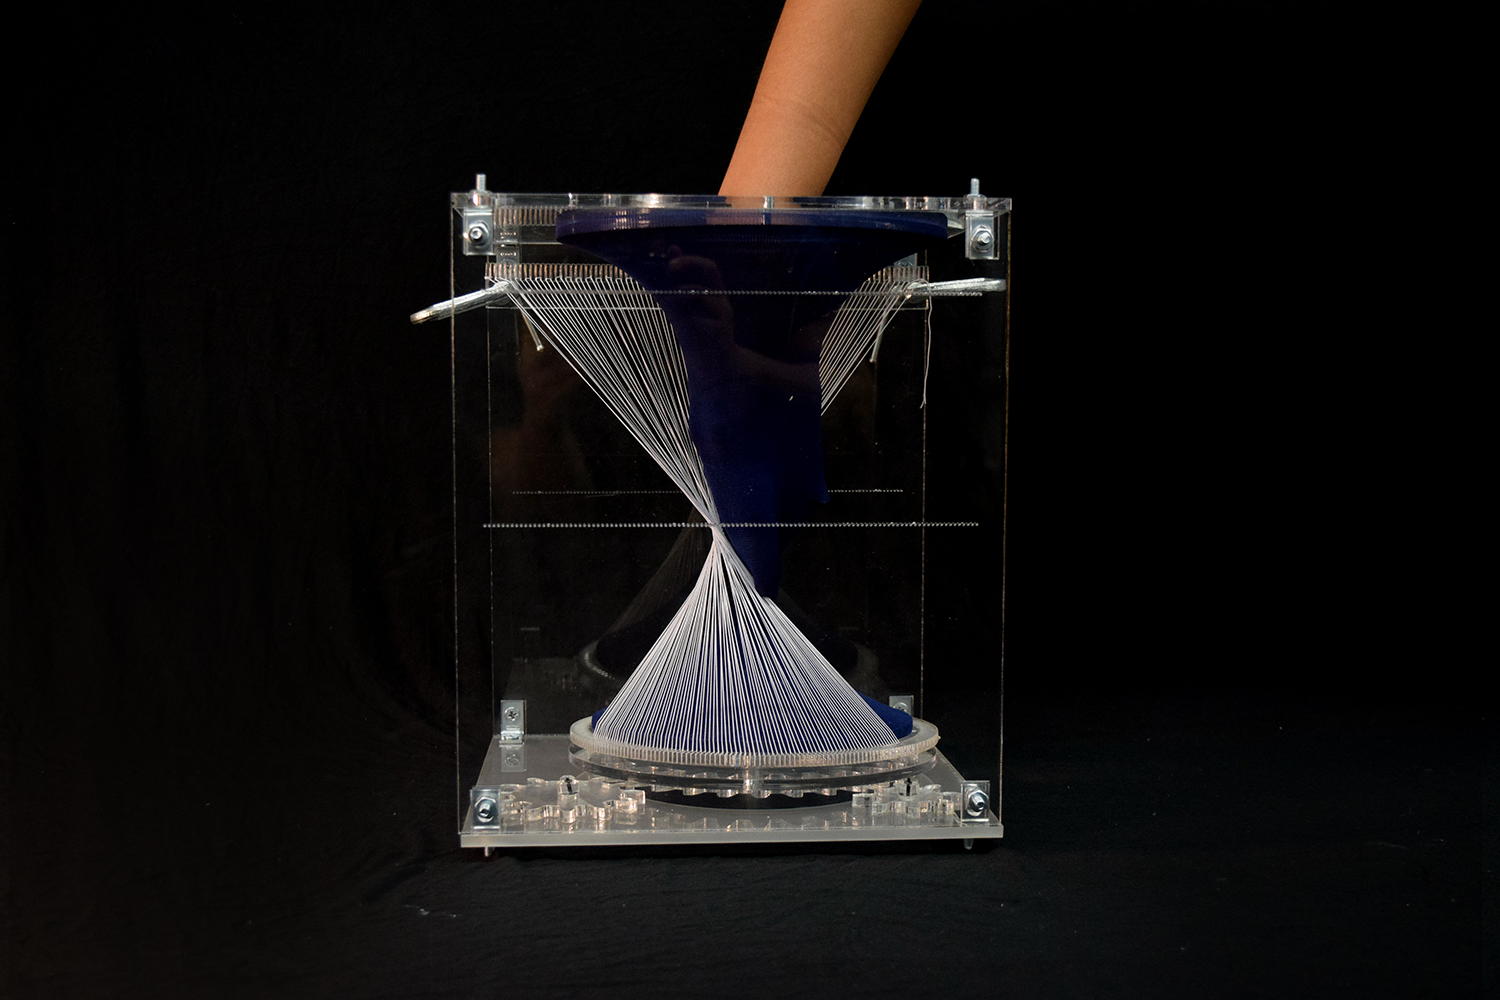 hand fully inside textile form through a hole in one face of the vertical acrylic box